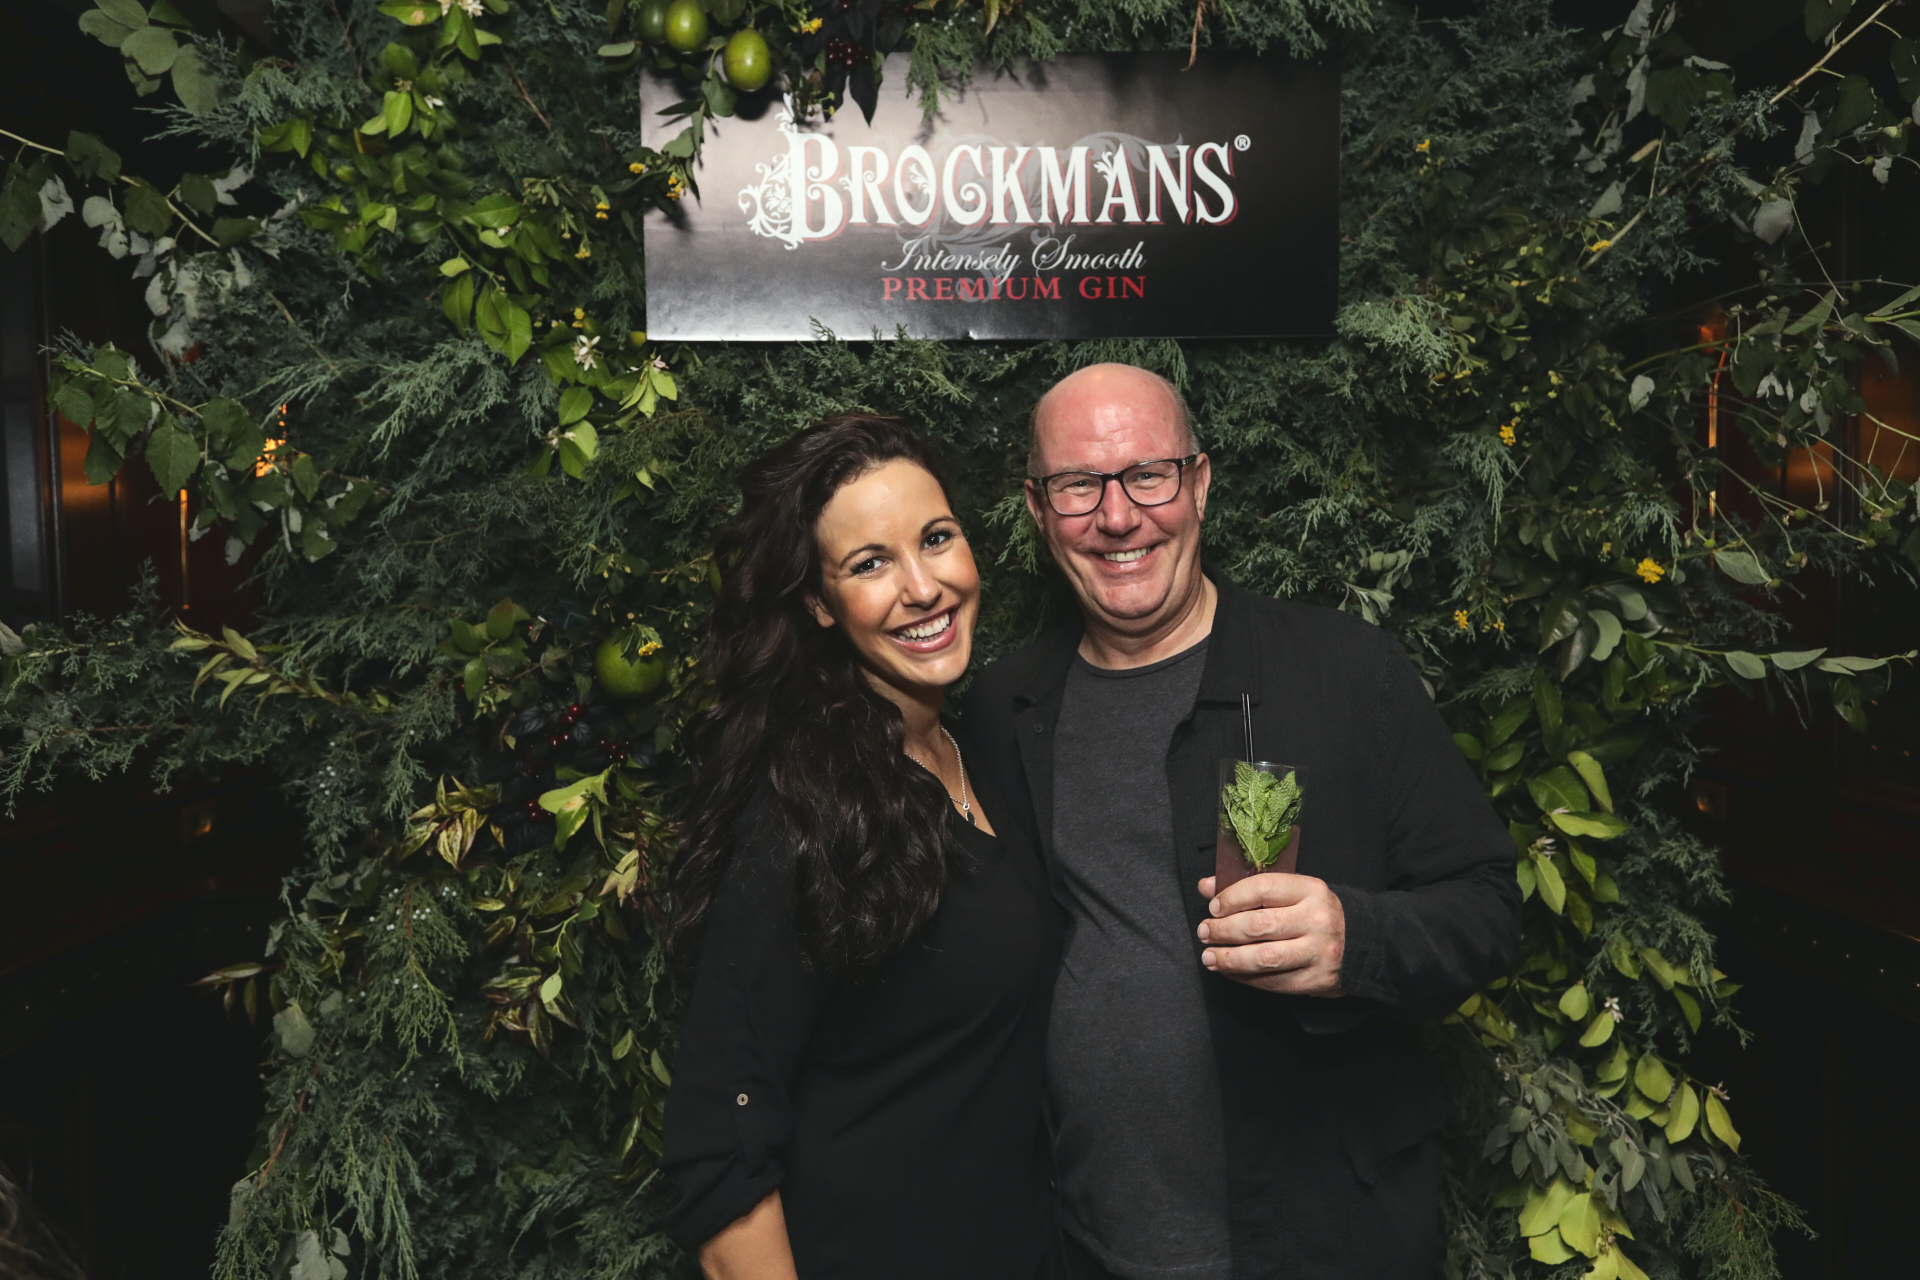 Brockman Gin's global brand manager Laura Motson and Brockman's Gin co-founder Bob Fowkes at the NoMad hotel. Courtesy Brockman's Gin.